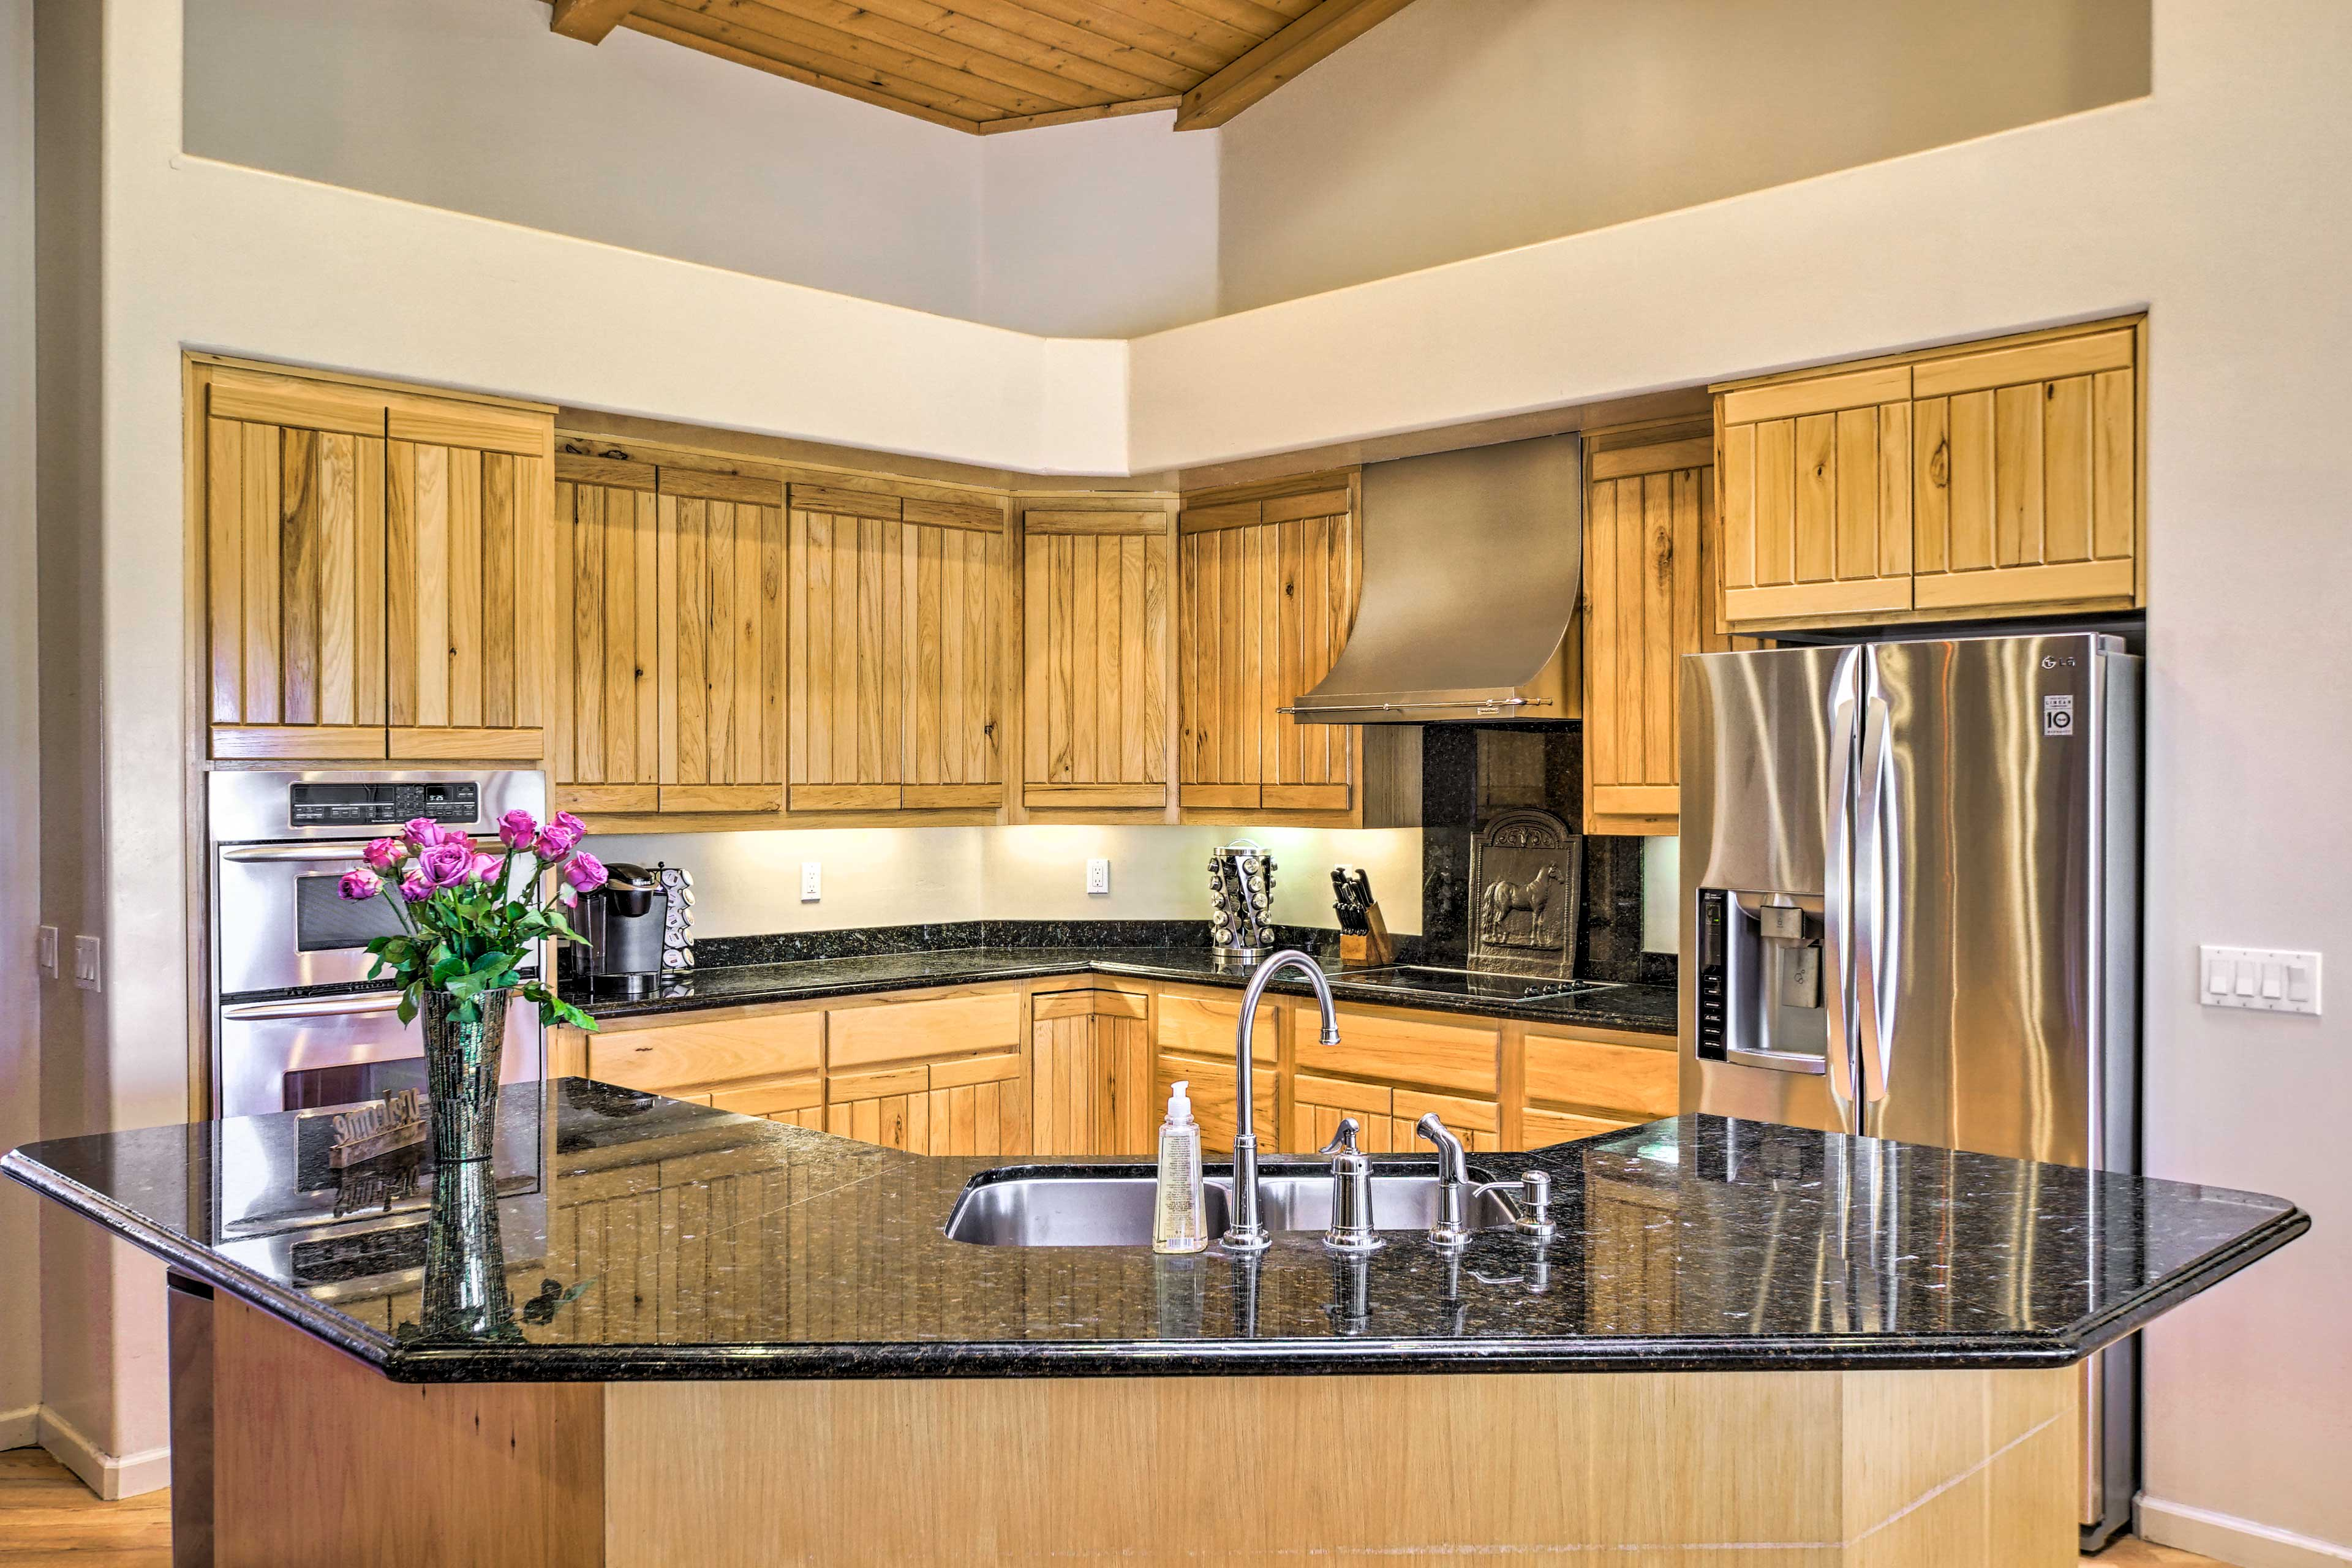 The kitchen features stainless steel appliances and granite counters.